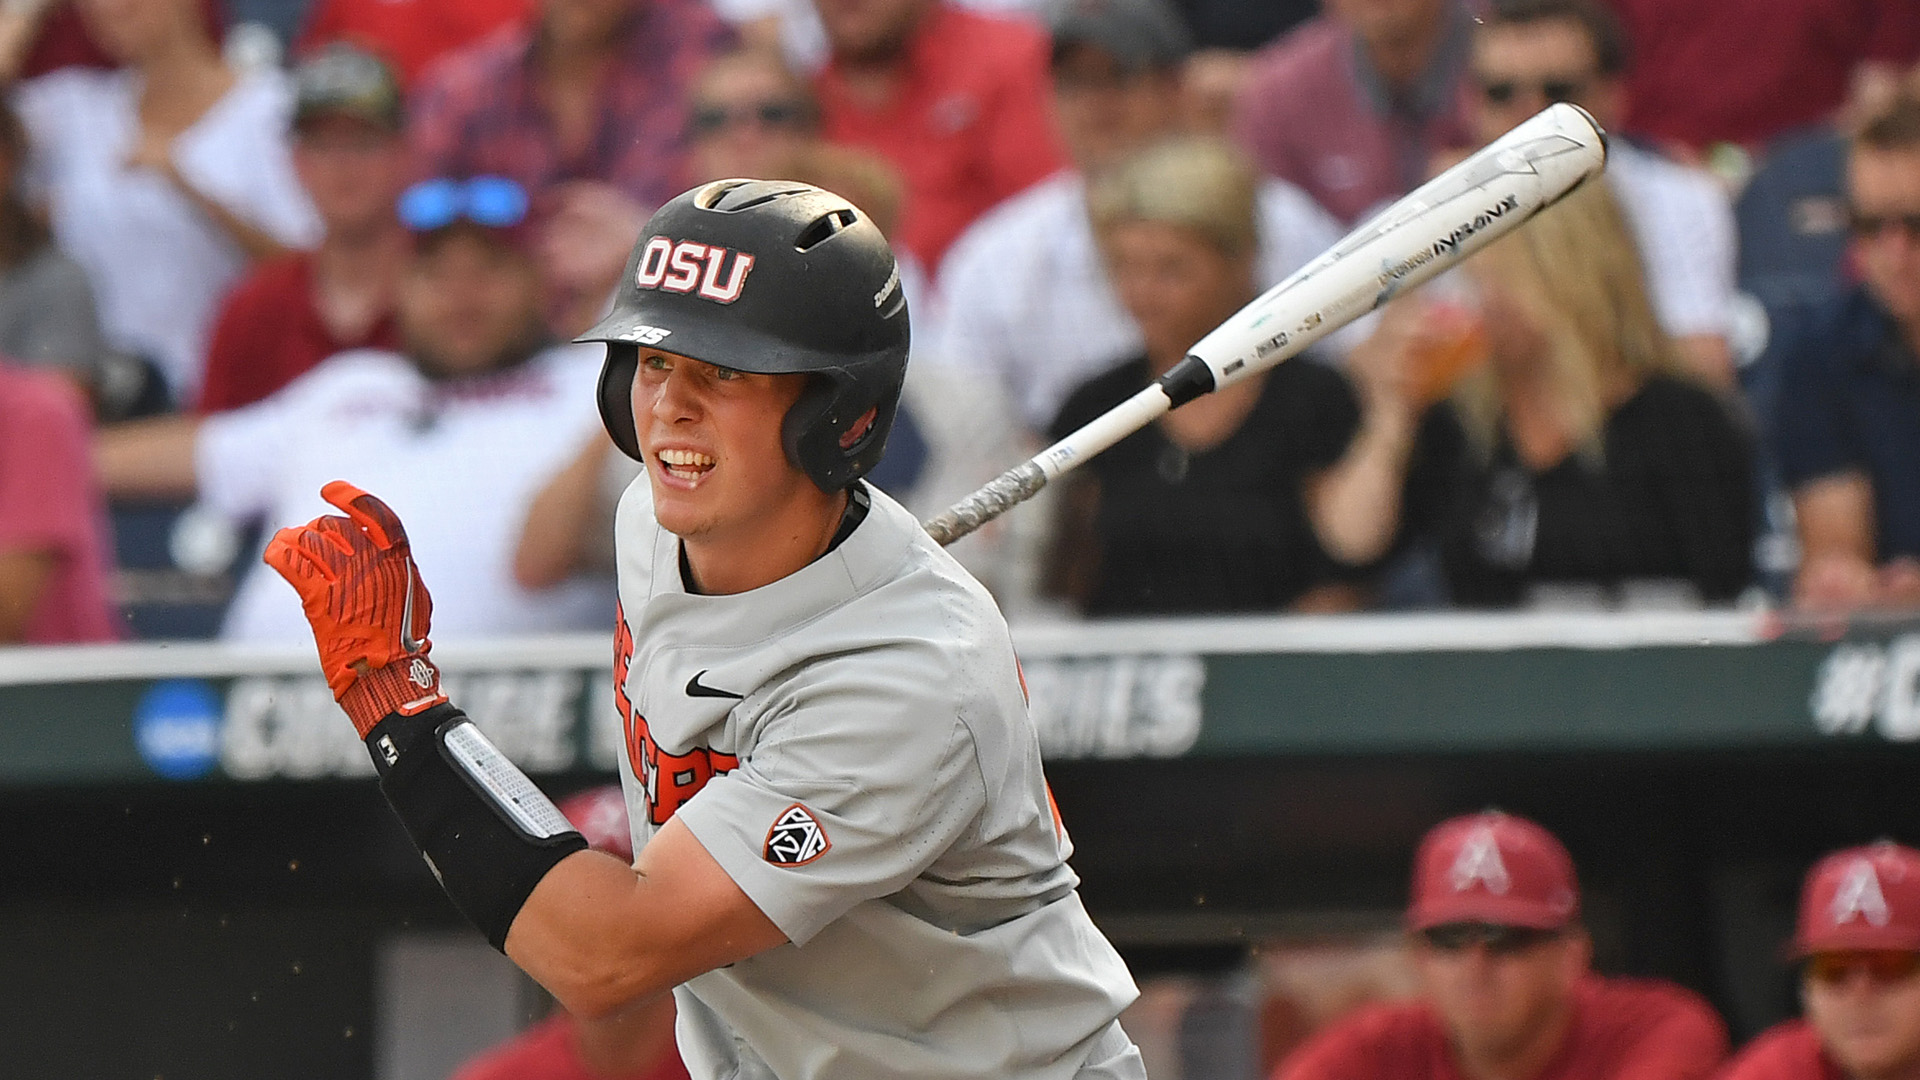 Oregon State Beats Arkansas to Claim College World Series Title